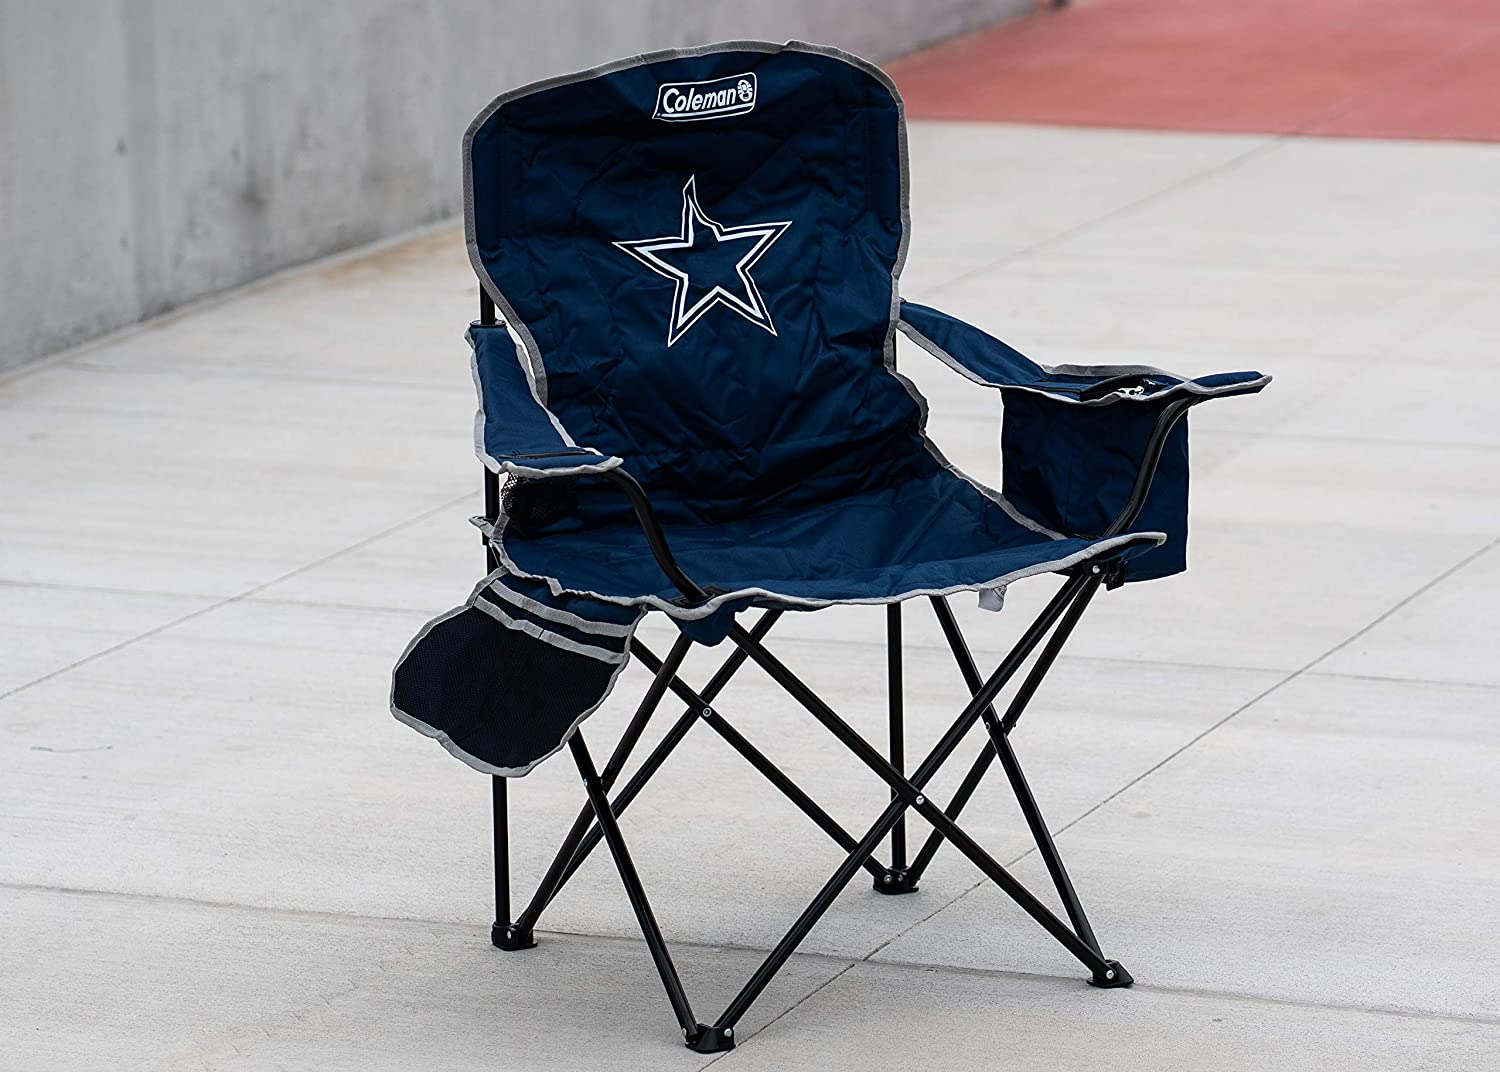 All Team Options Coleman NFL Cooler Quad Folding Tailgating /& Camping Chair with Built in Cooler and Carrying Case